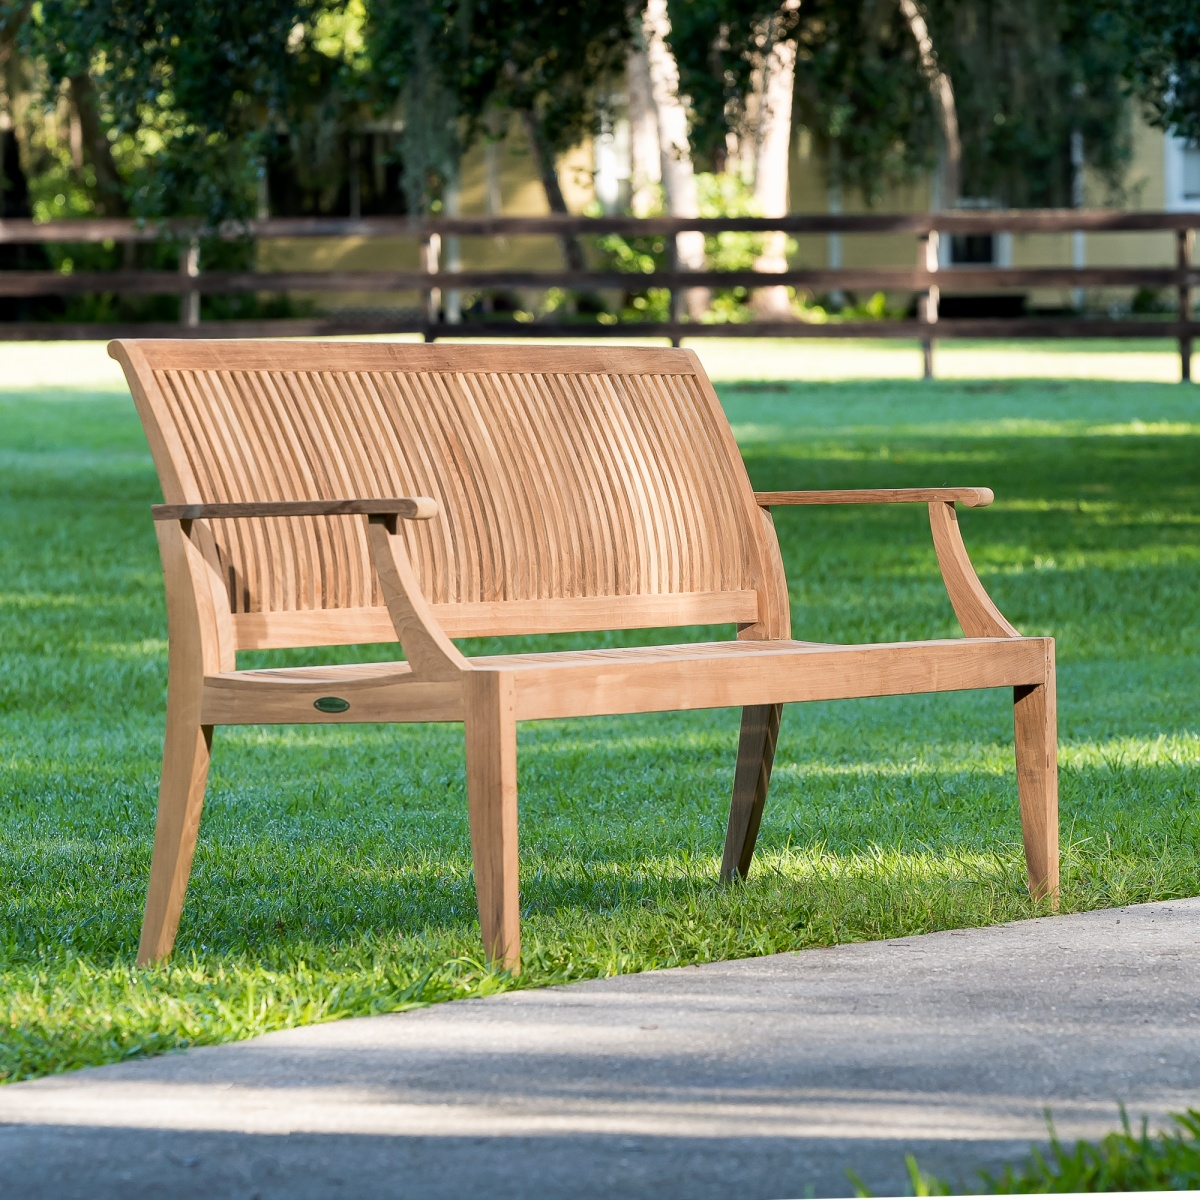 Laguna Teak Garden Bench 6 ft - Westminster Teak Outdoor Furniture